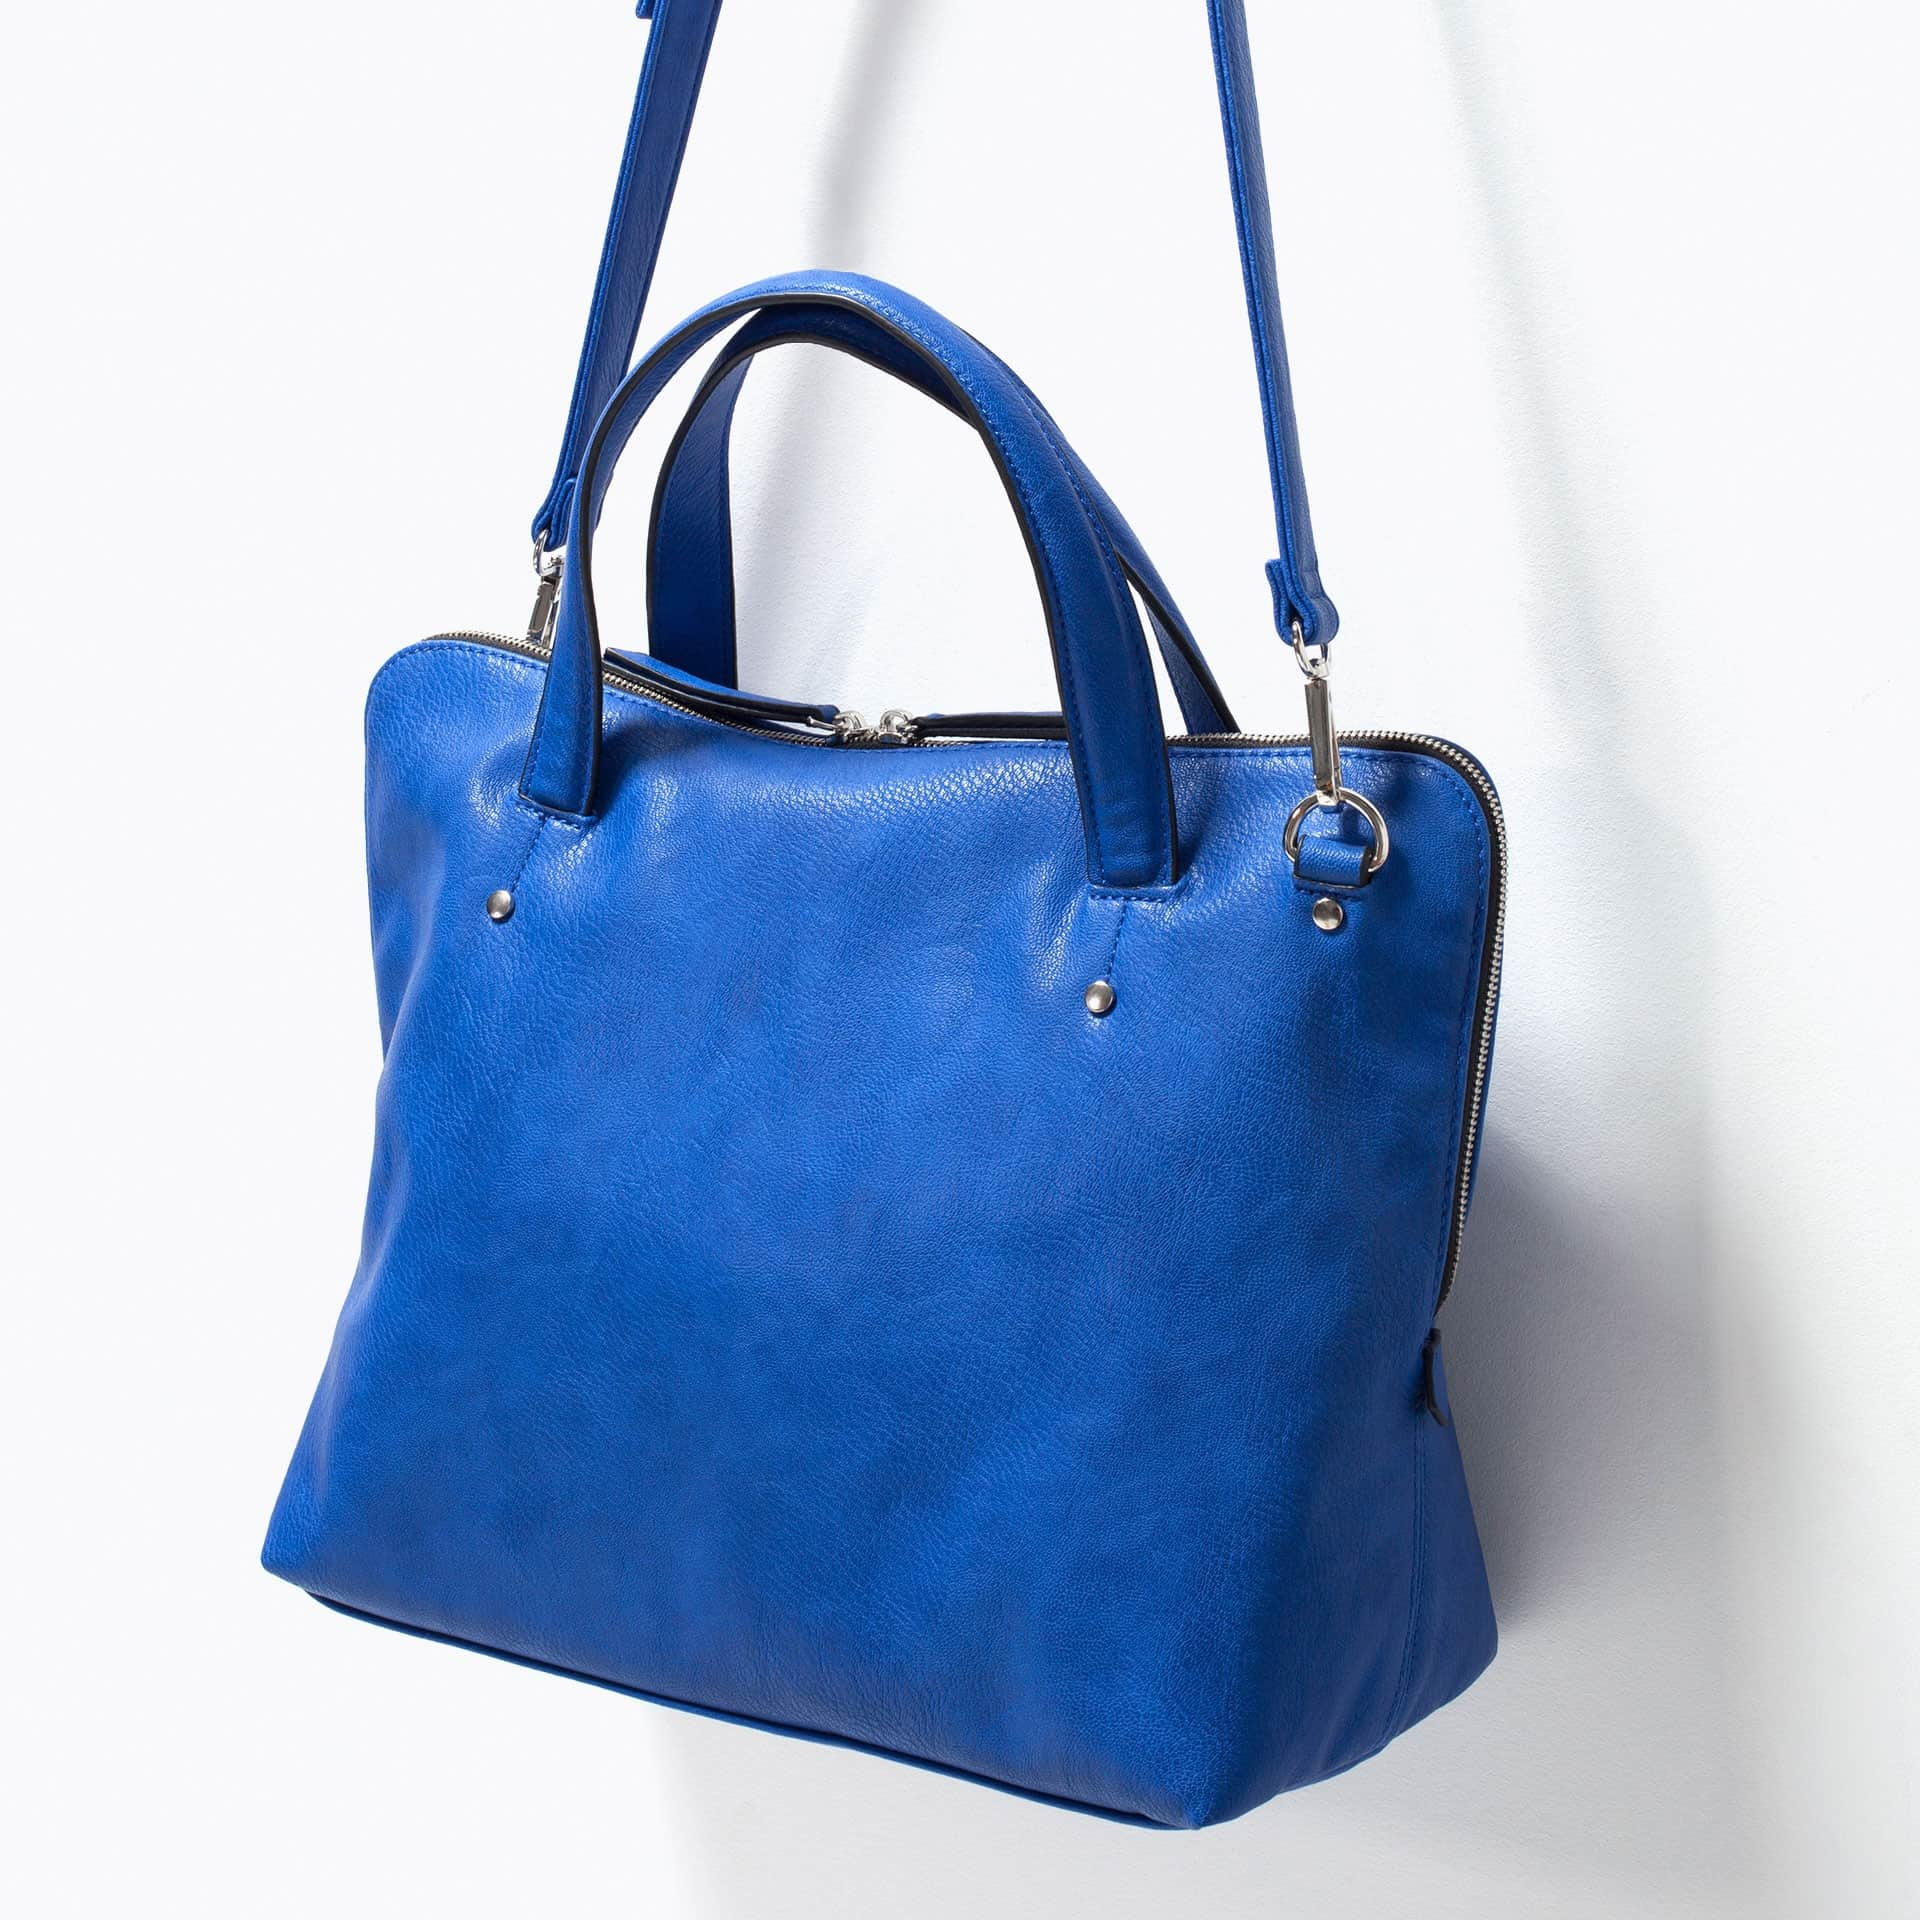 Buy ZARA Soft City Bag Blue [4579/004], Features, Price, Reviews ...